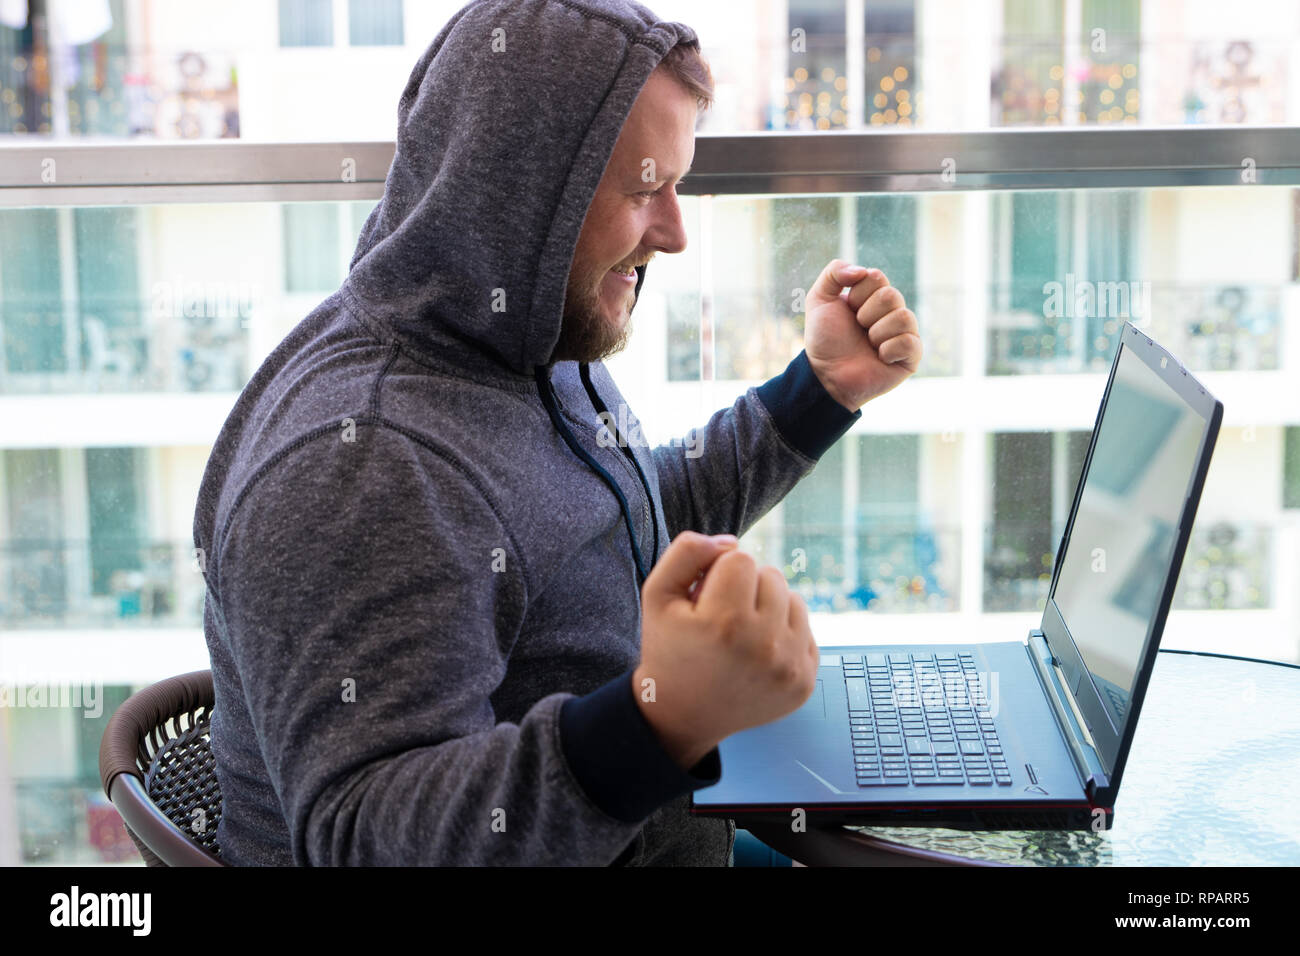 Cybercrime, hacking and technology concept - male hacker